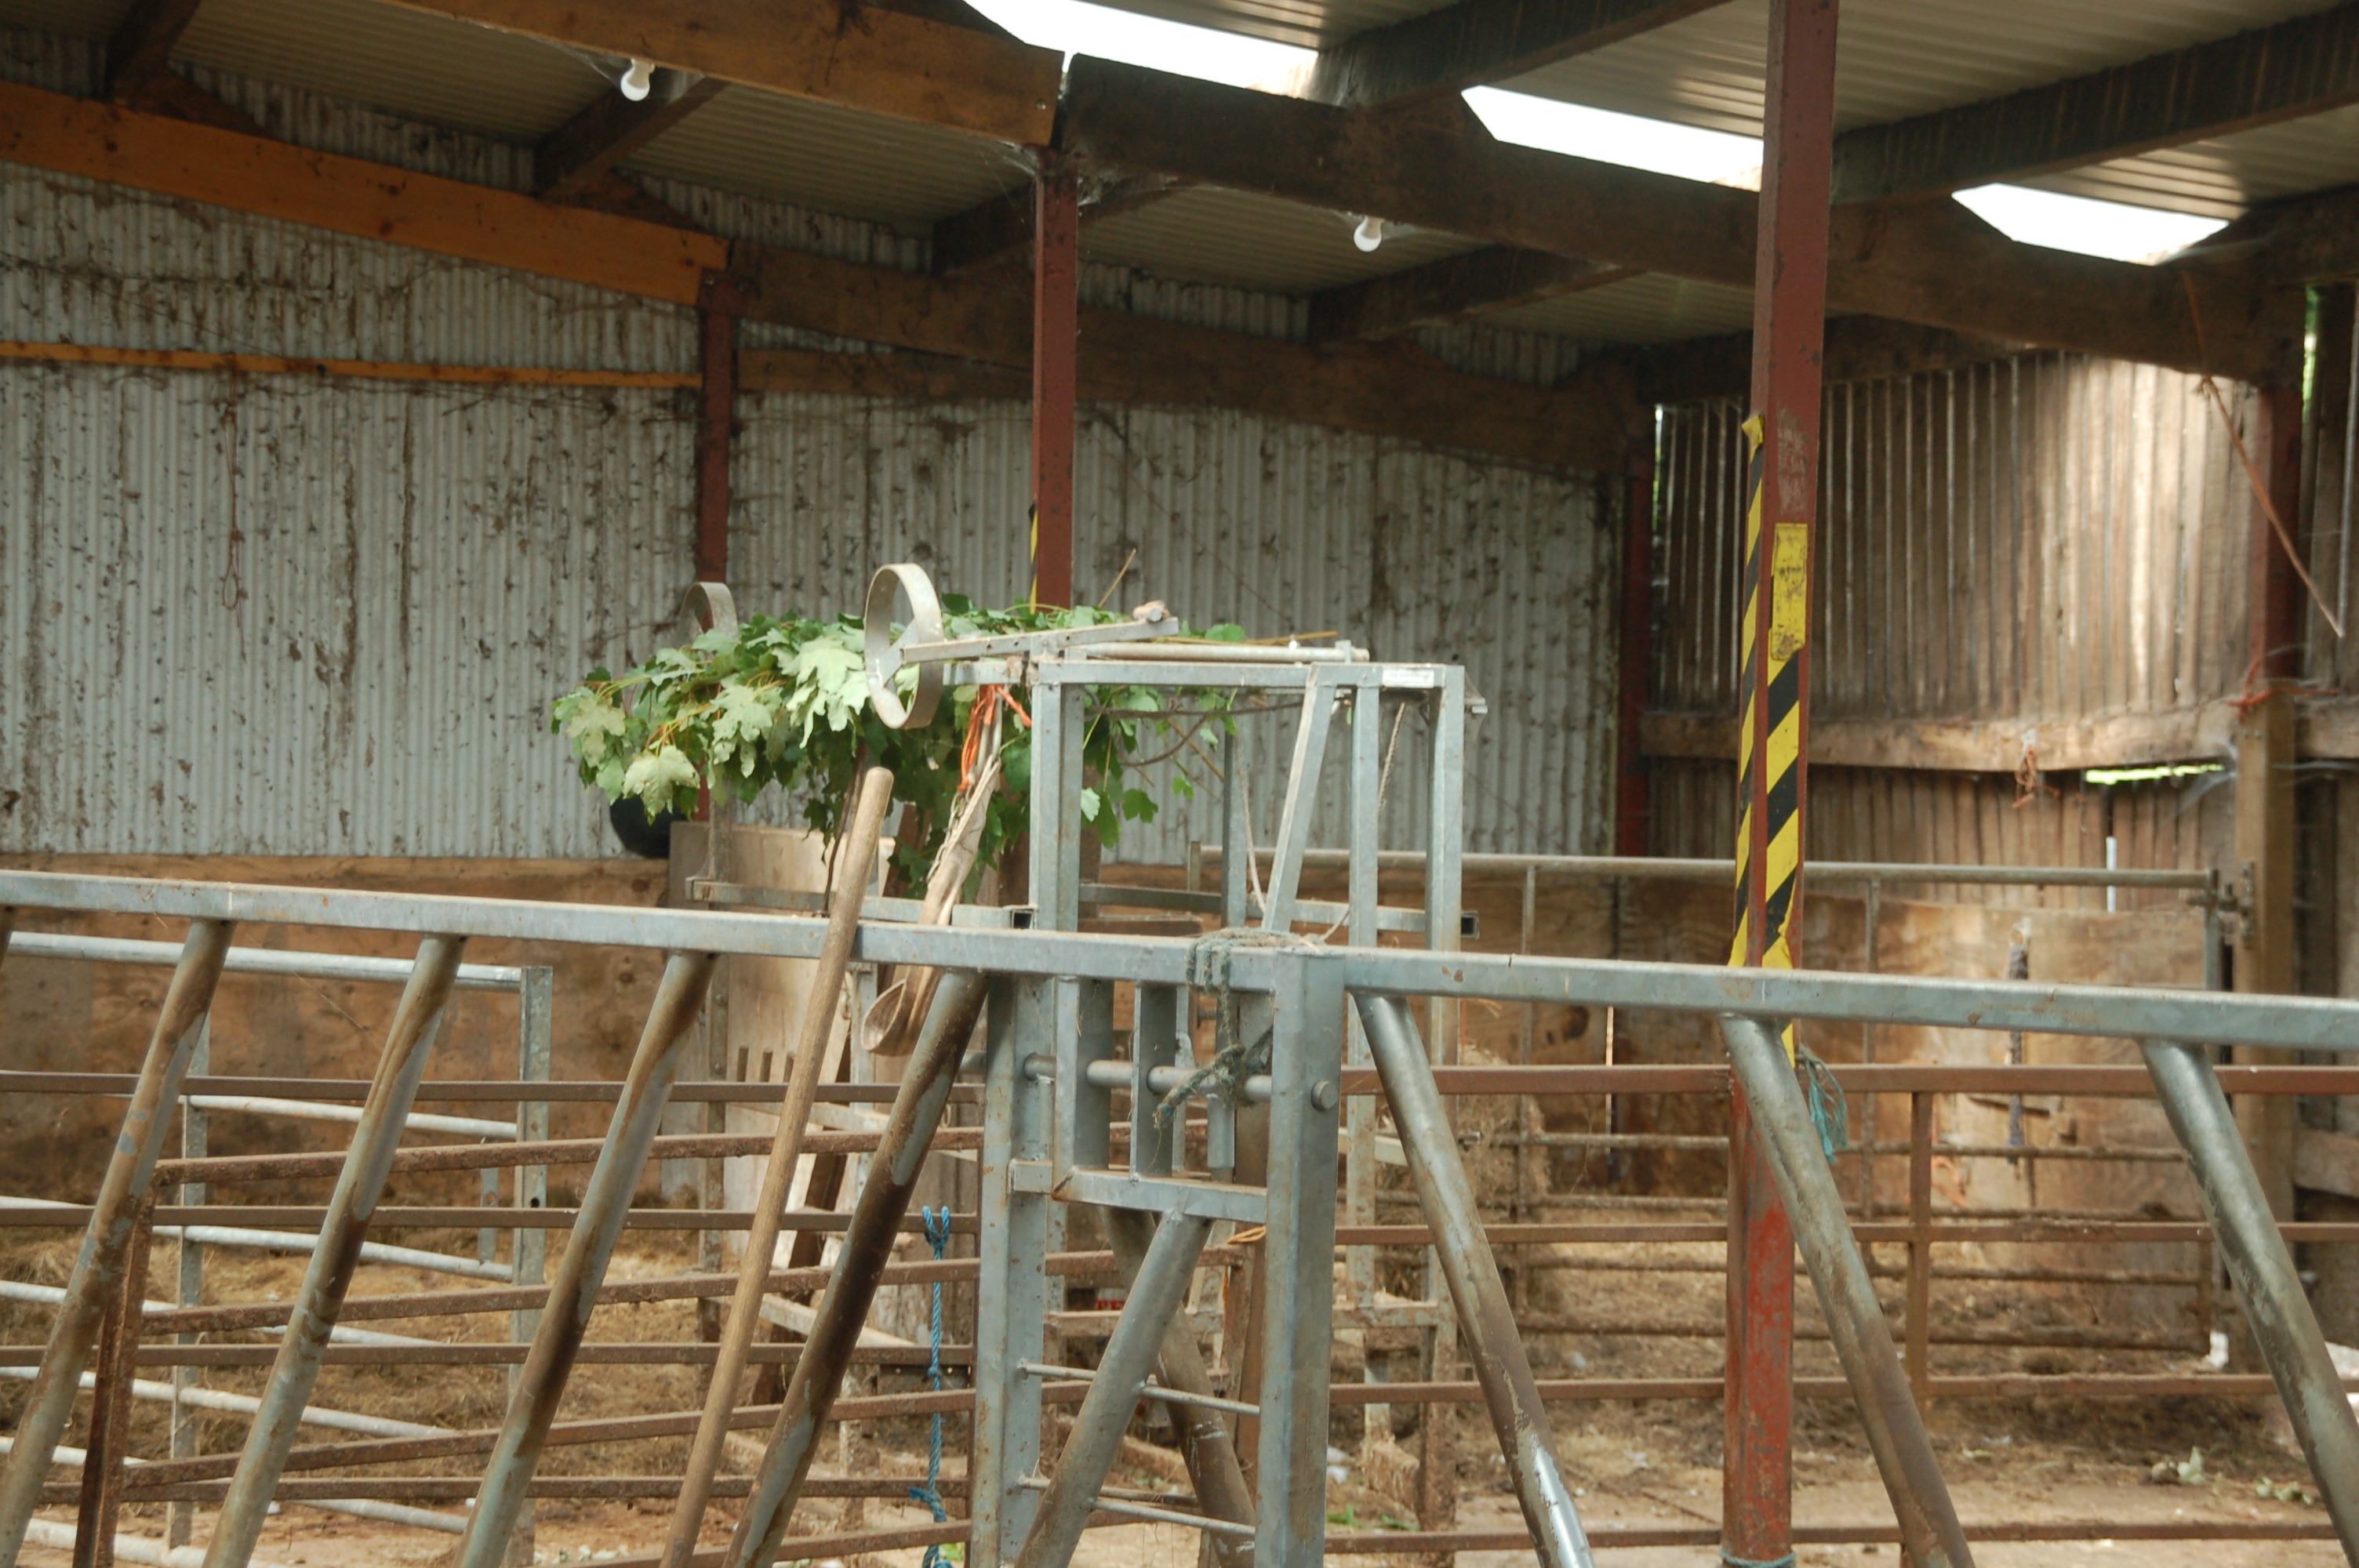 Sycamore leaves that will become tree hay drying in their barn at Challan